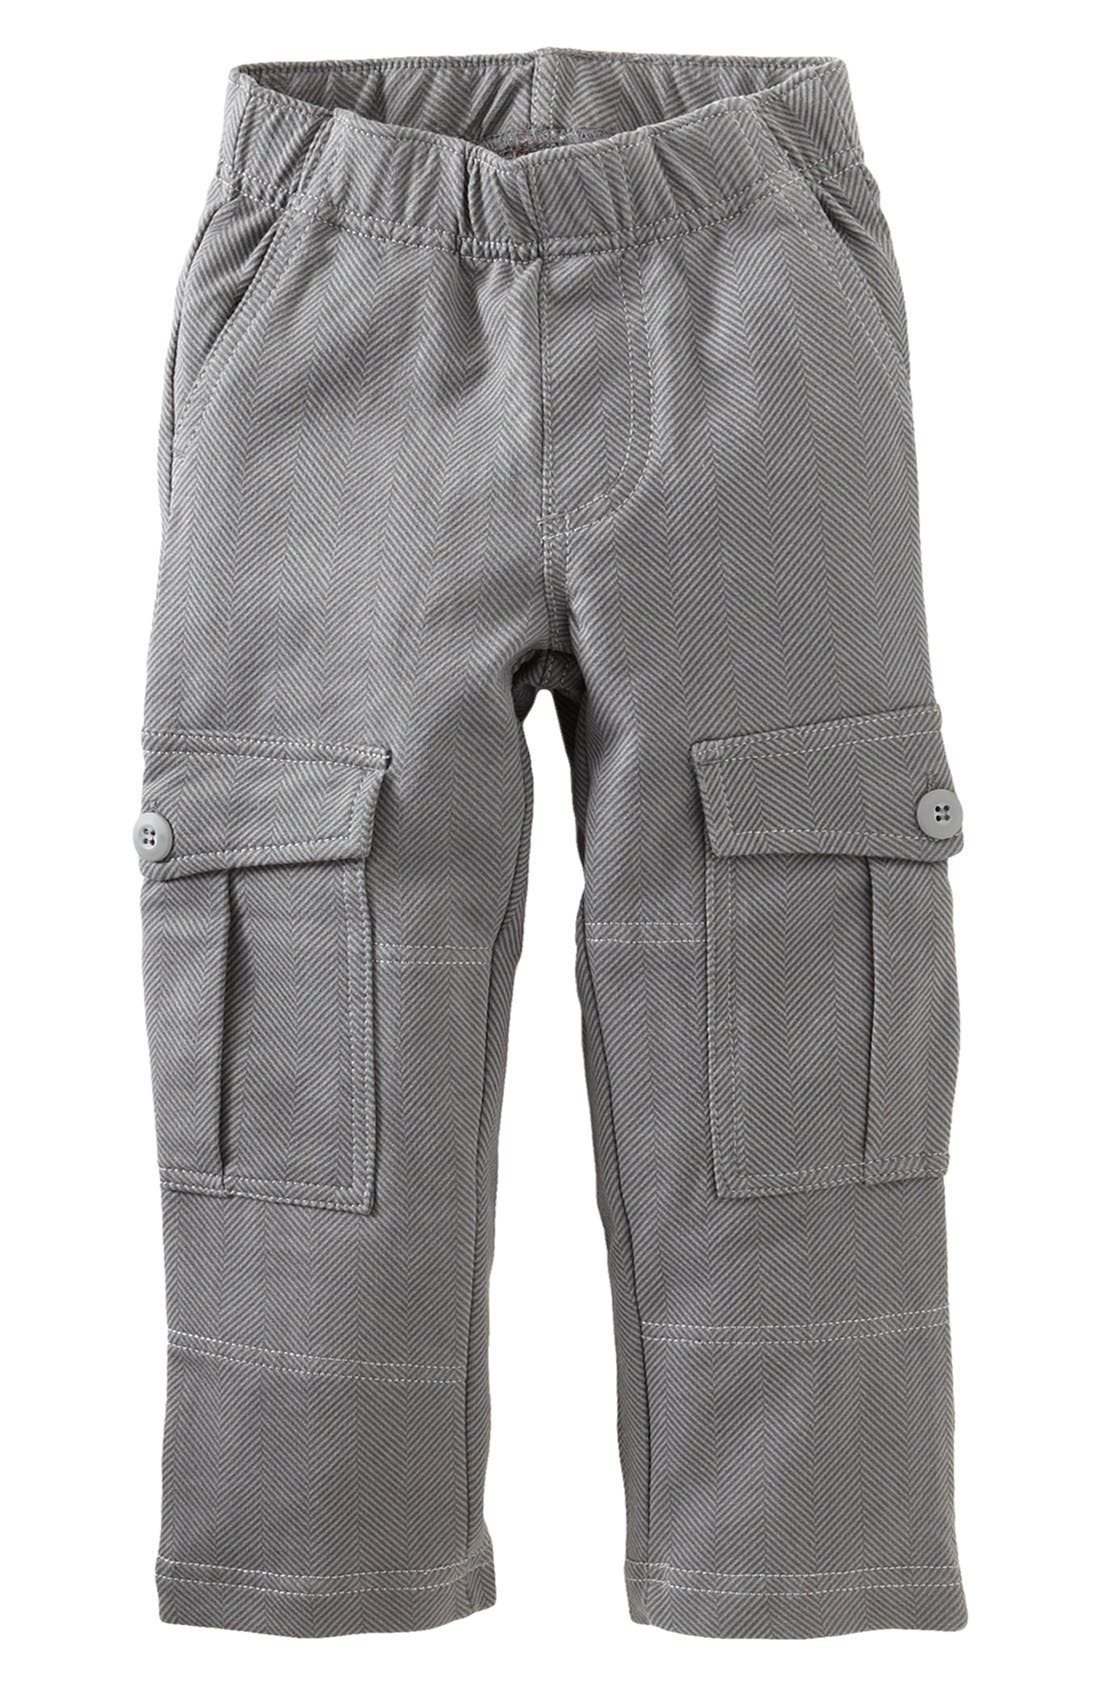 Main Image - Tea Collection Herringbone Cargo Pants (Toddler Boys)